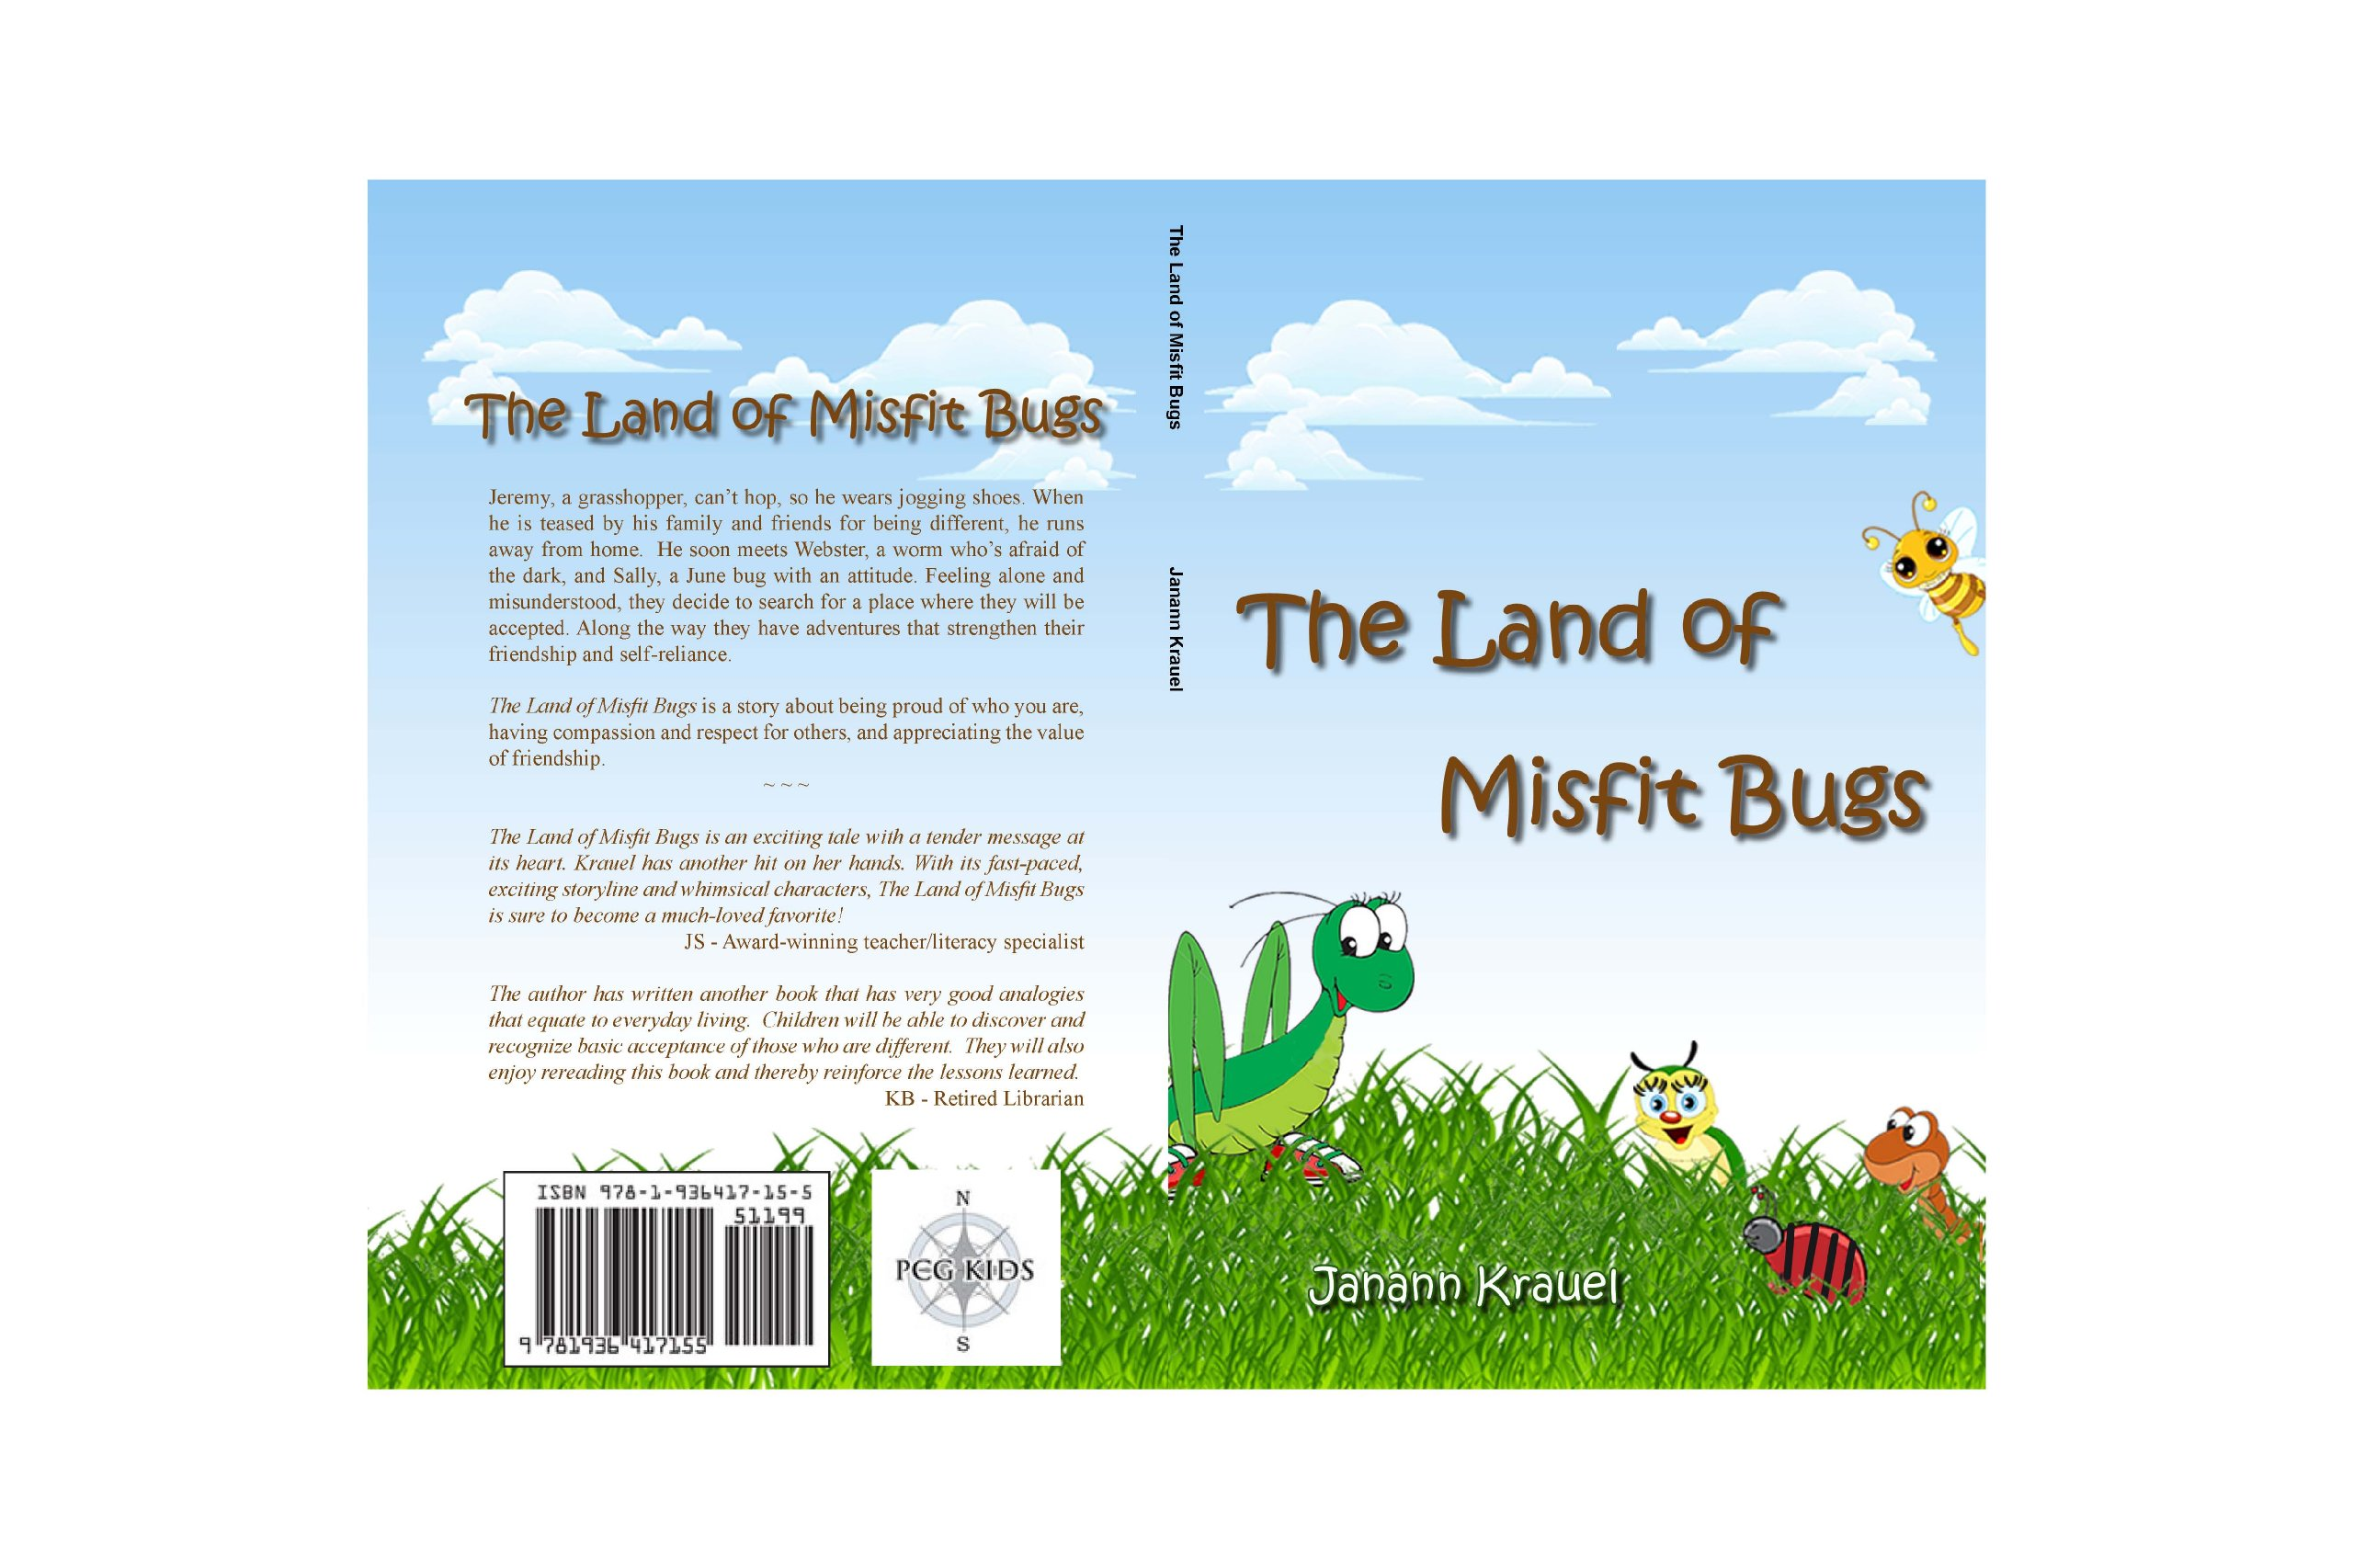 The Land of Misfit Bugs